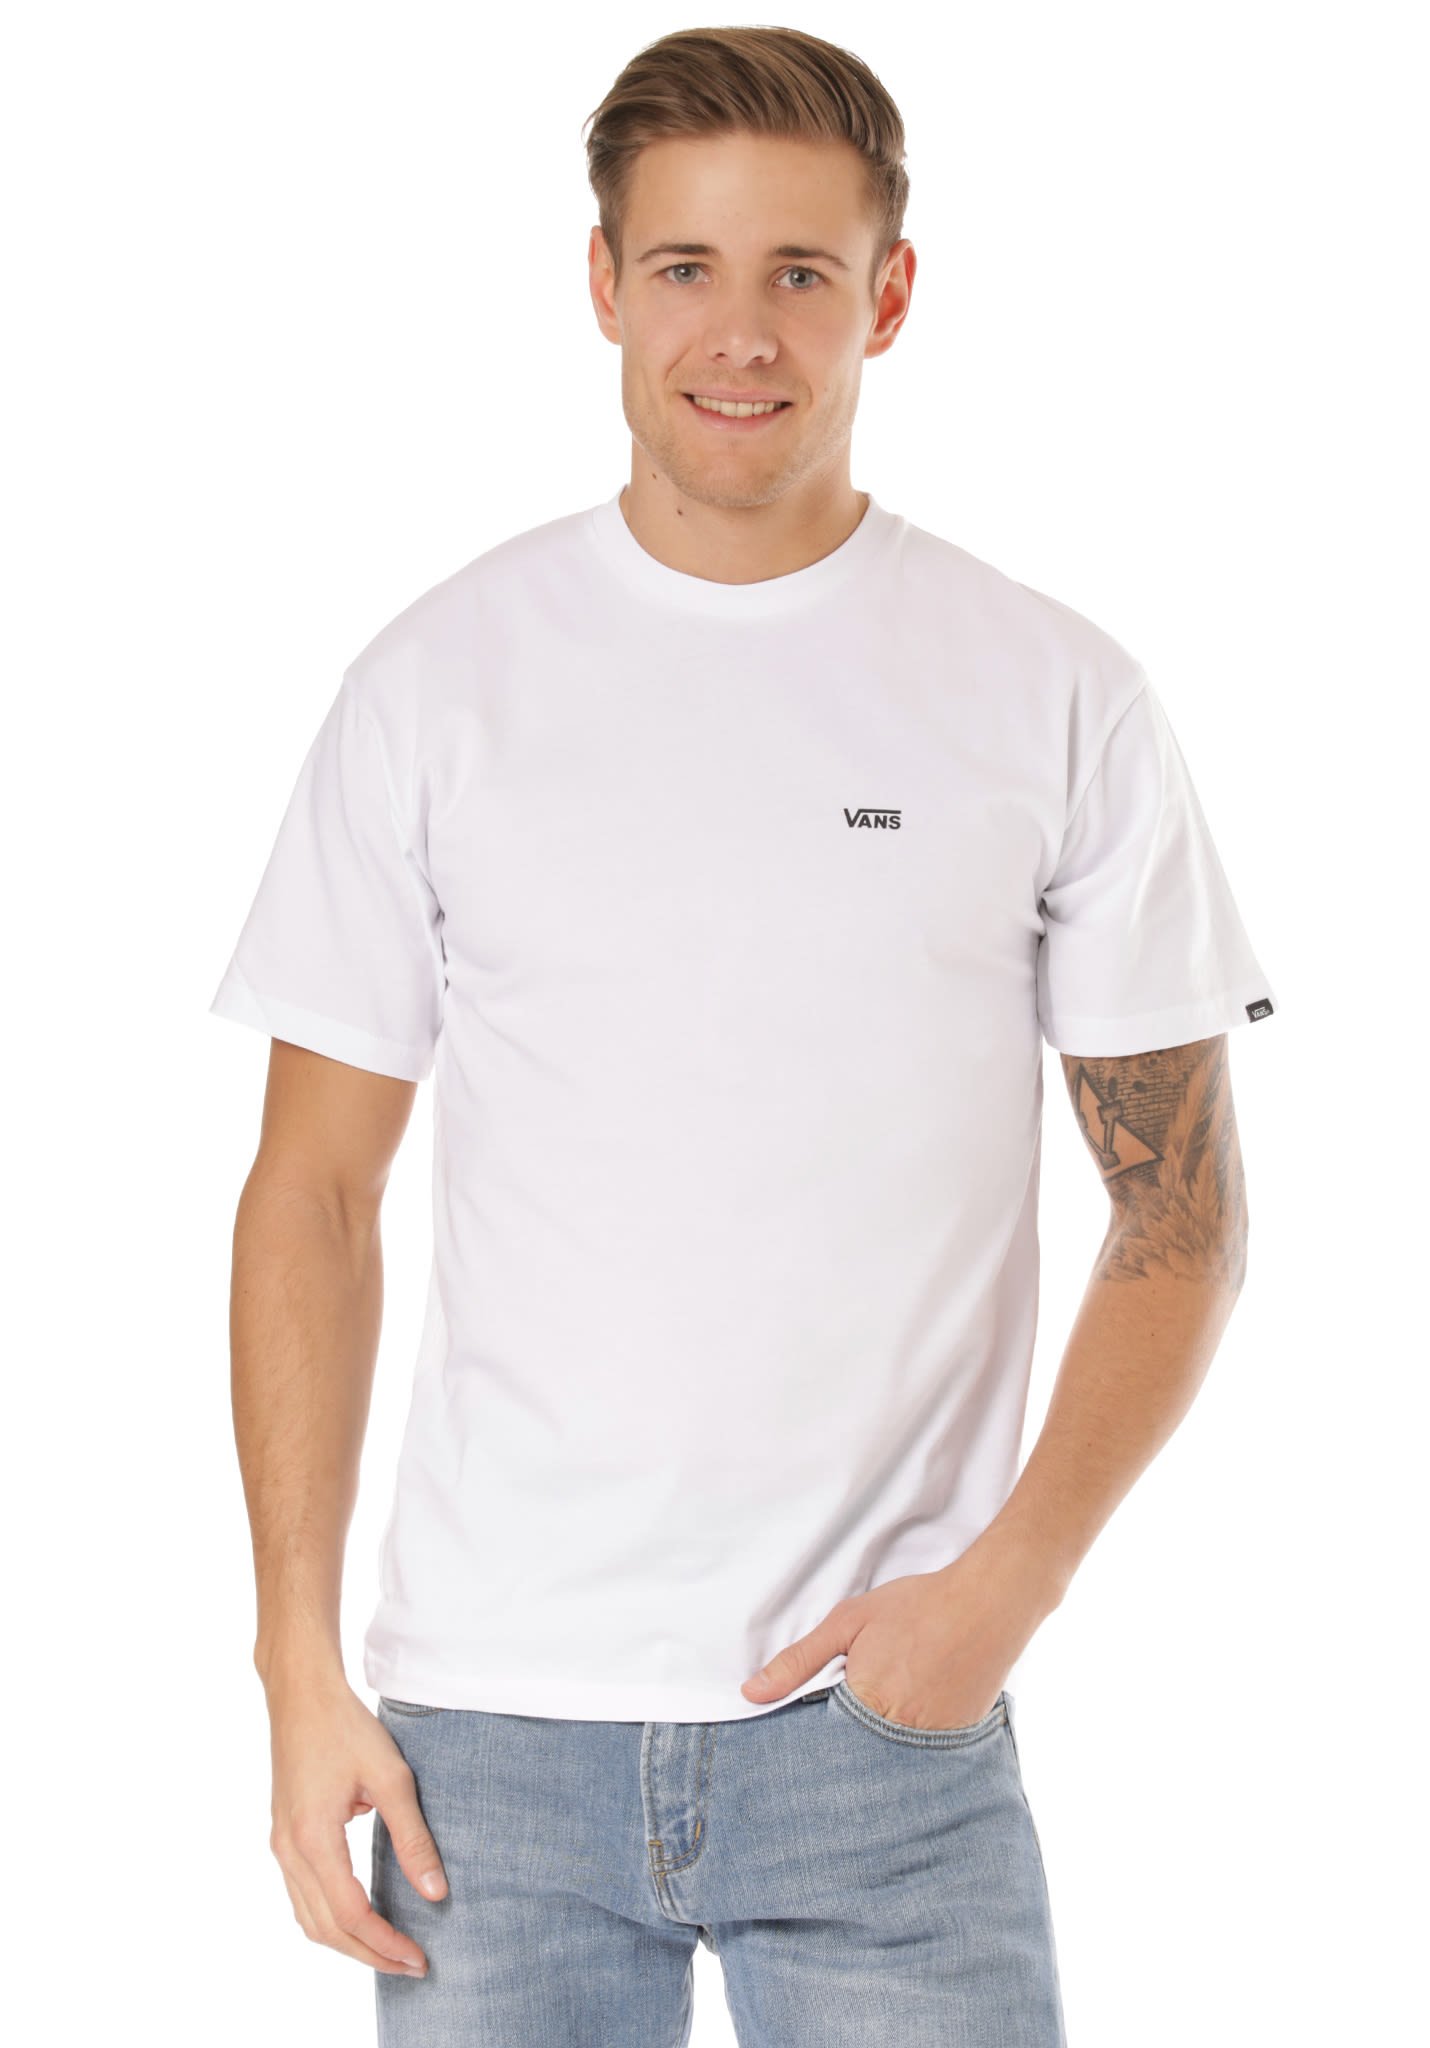 57eb71cd0f21d1 Vans Left Chest Logo - T-Shirt for Men - White - Planet Sports